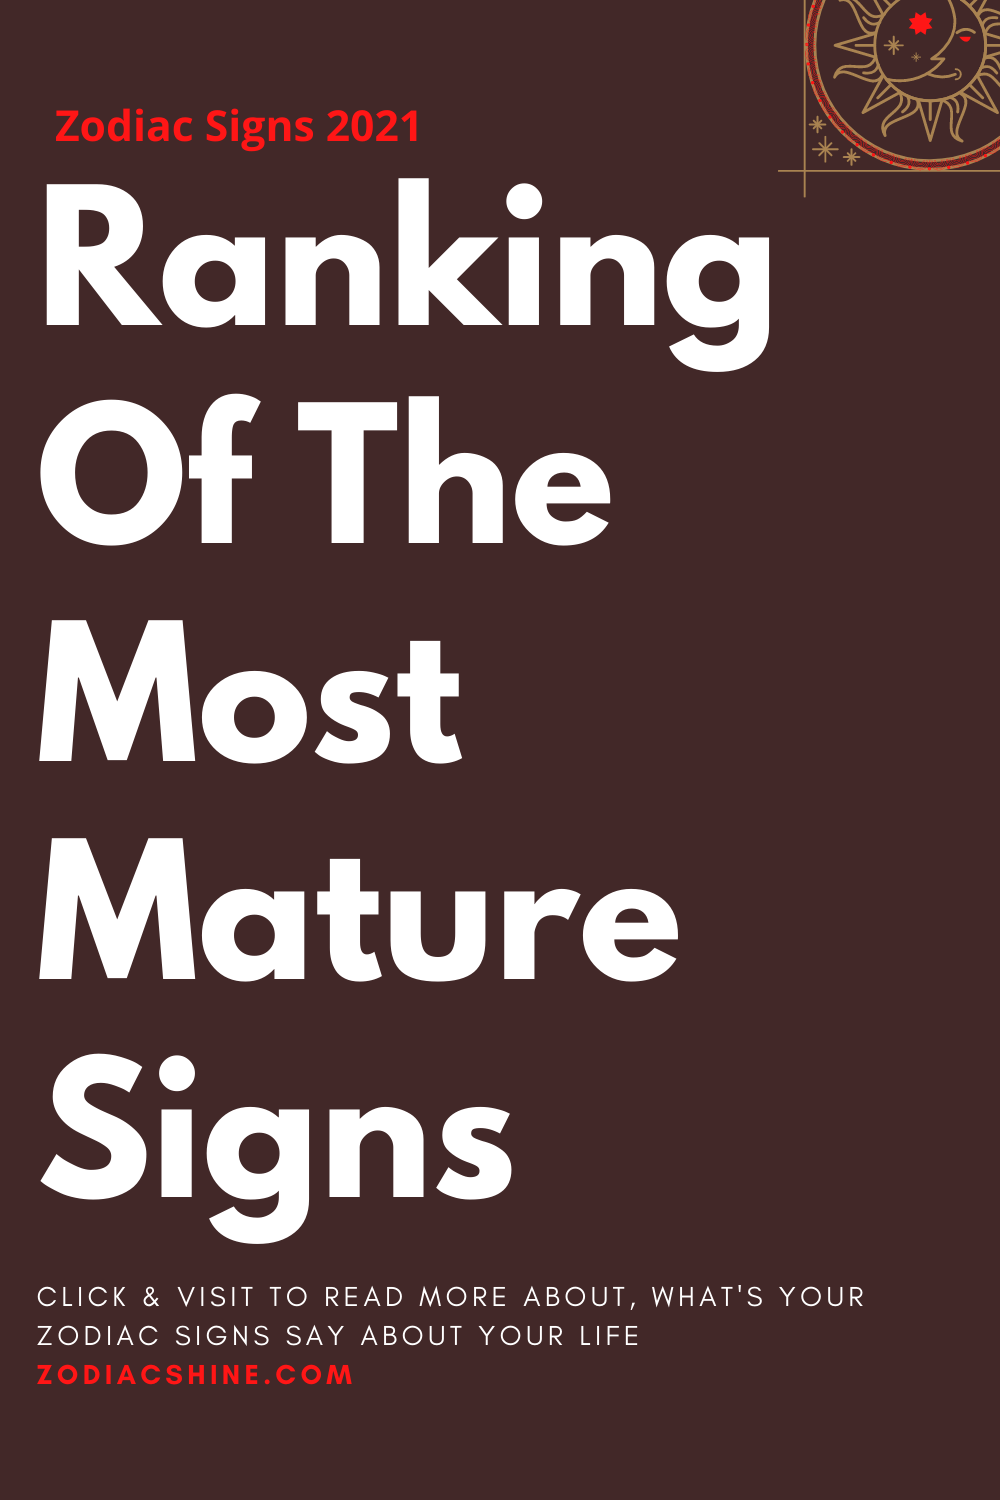 Ranking Of The Most Mature Signs